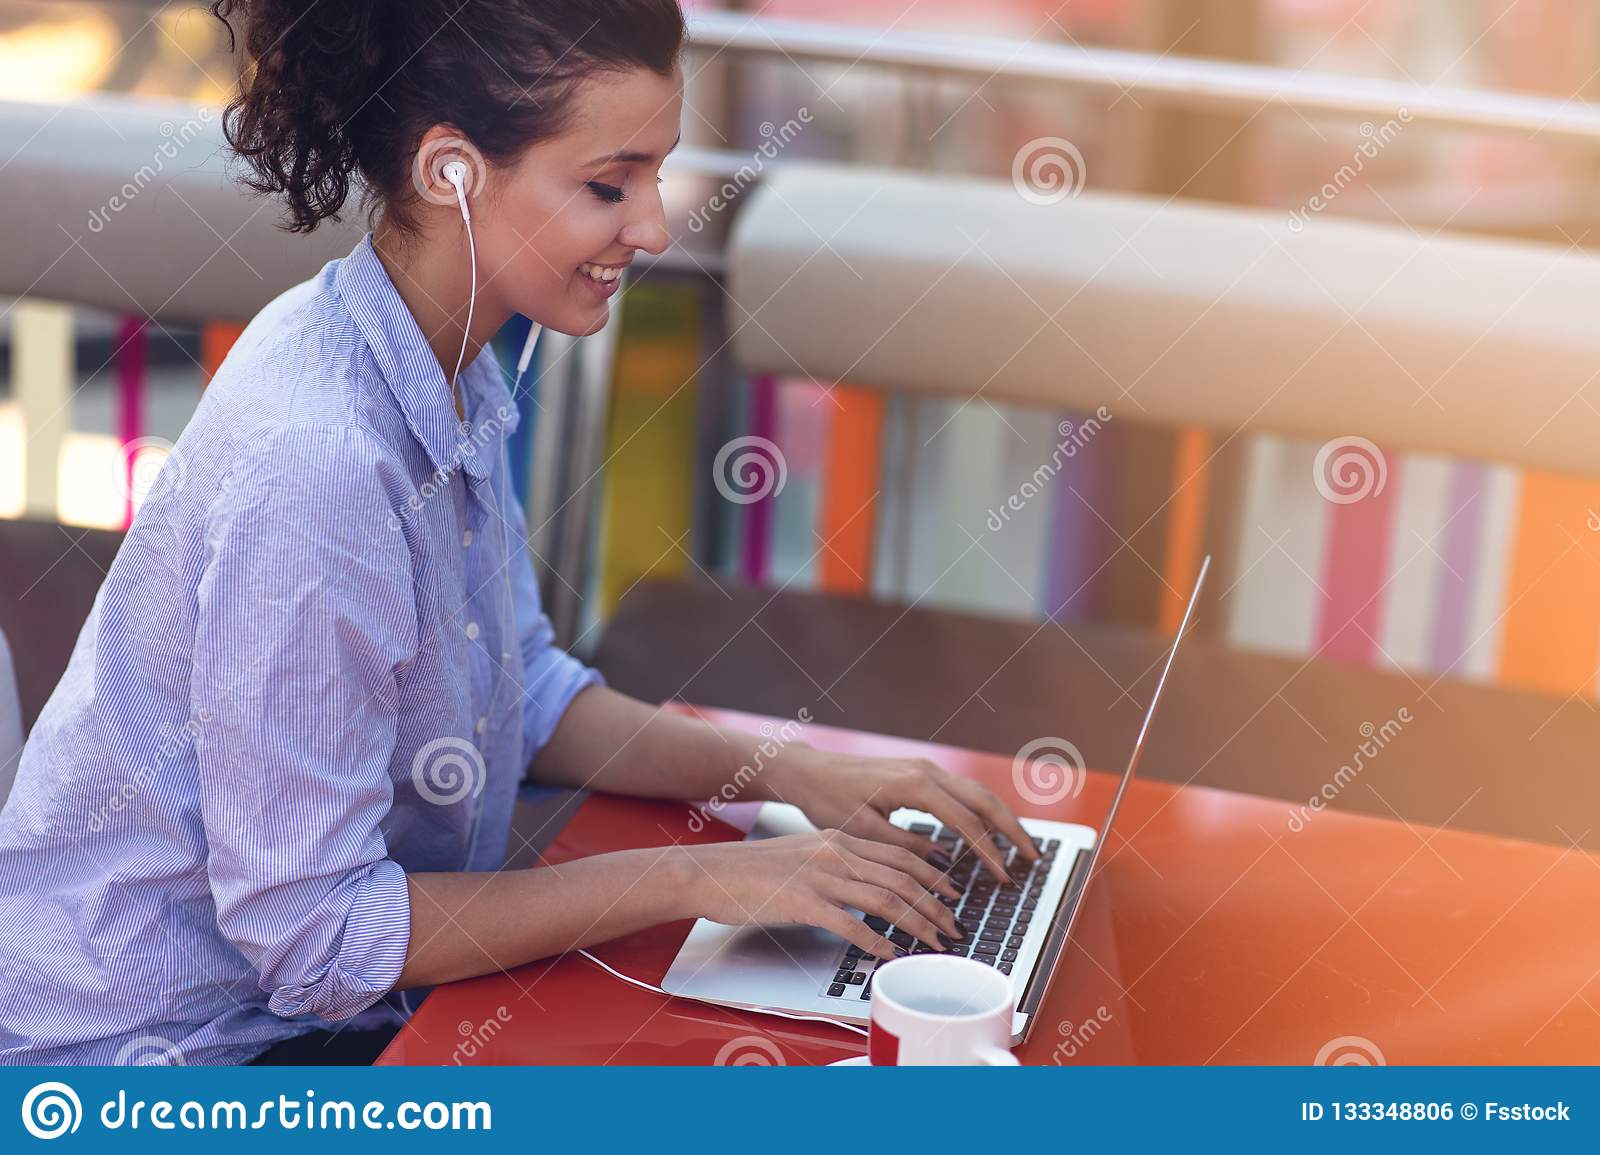 Mixed race female performing business negotiations on video chat. Telecommuting concept.